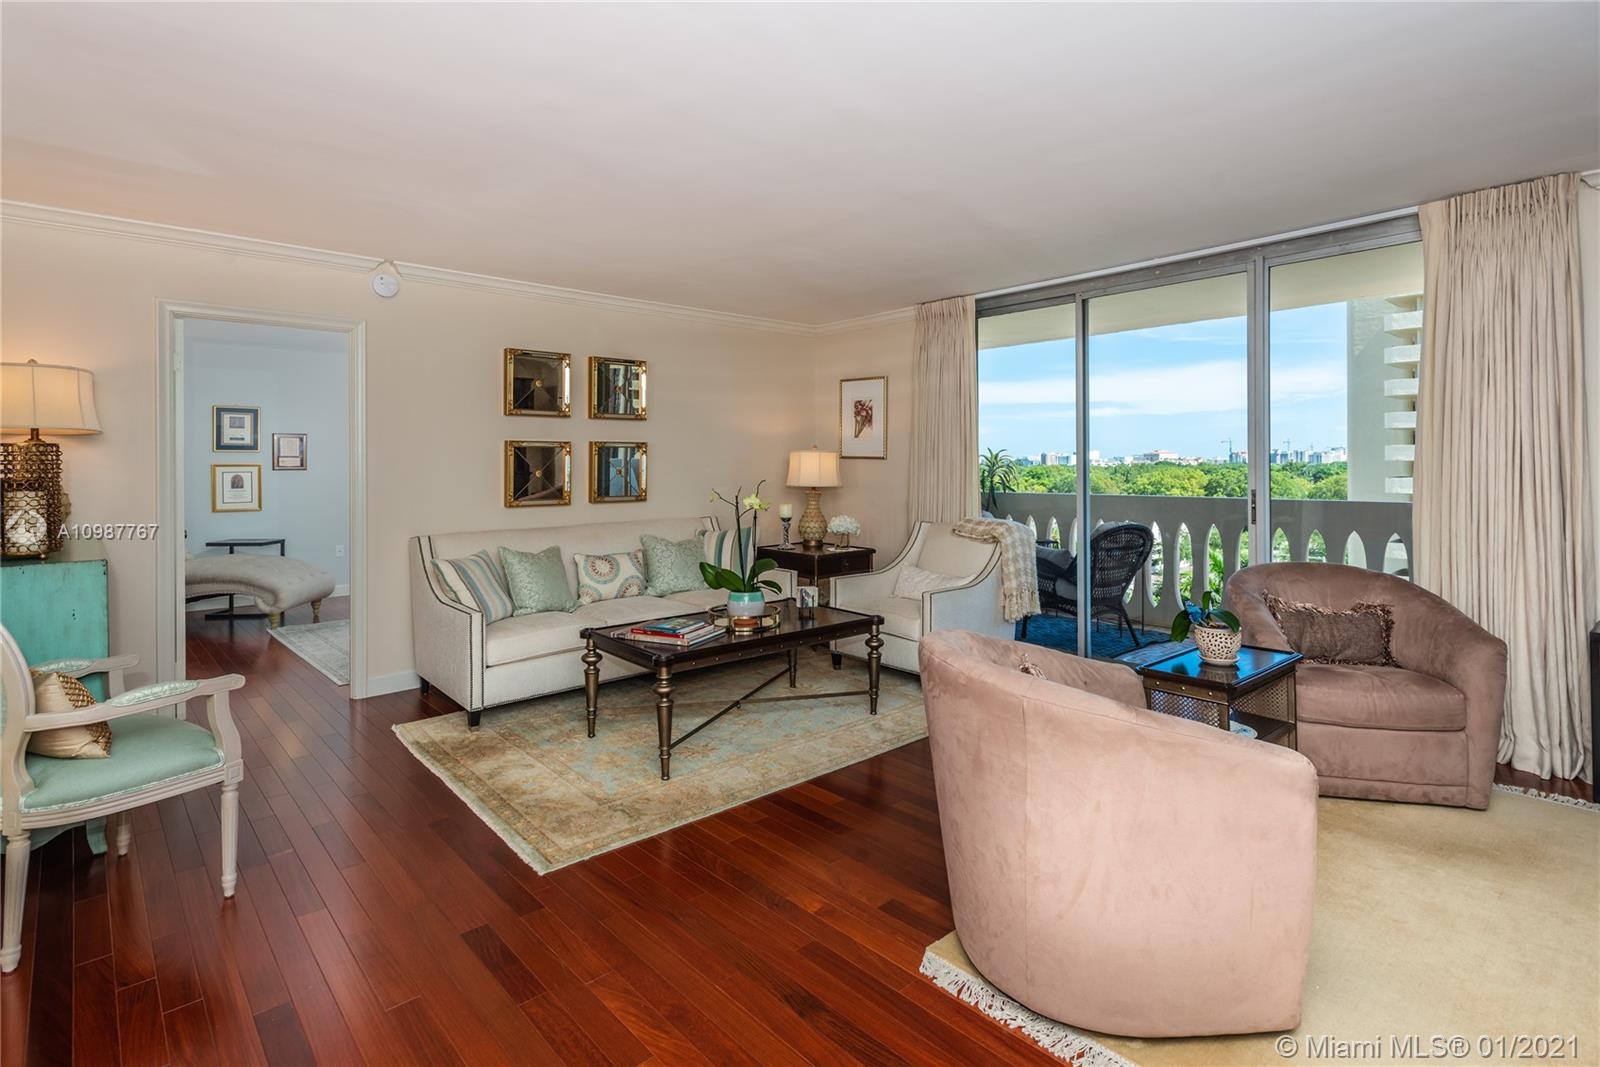 625 Biltmore Way # 805, Coral Gables, Florida 33134, 2 Bedrooms Bedrooms, ,2 BathroomsBathrooms,Residential,For Sale,625 Biltmore Way # 805,A10987767